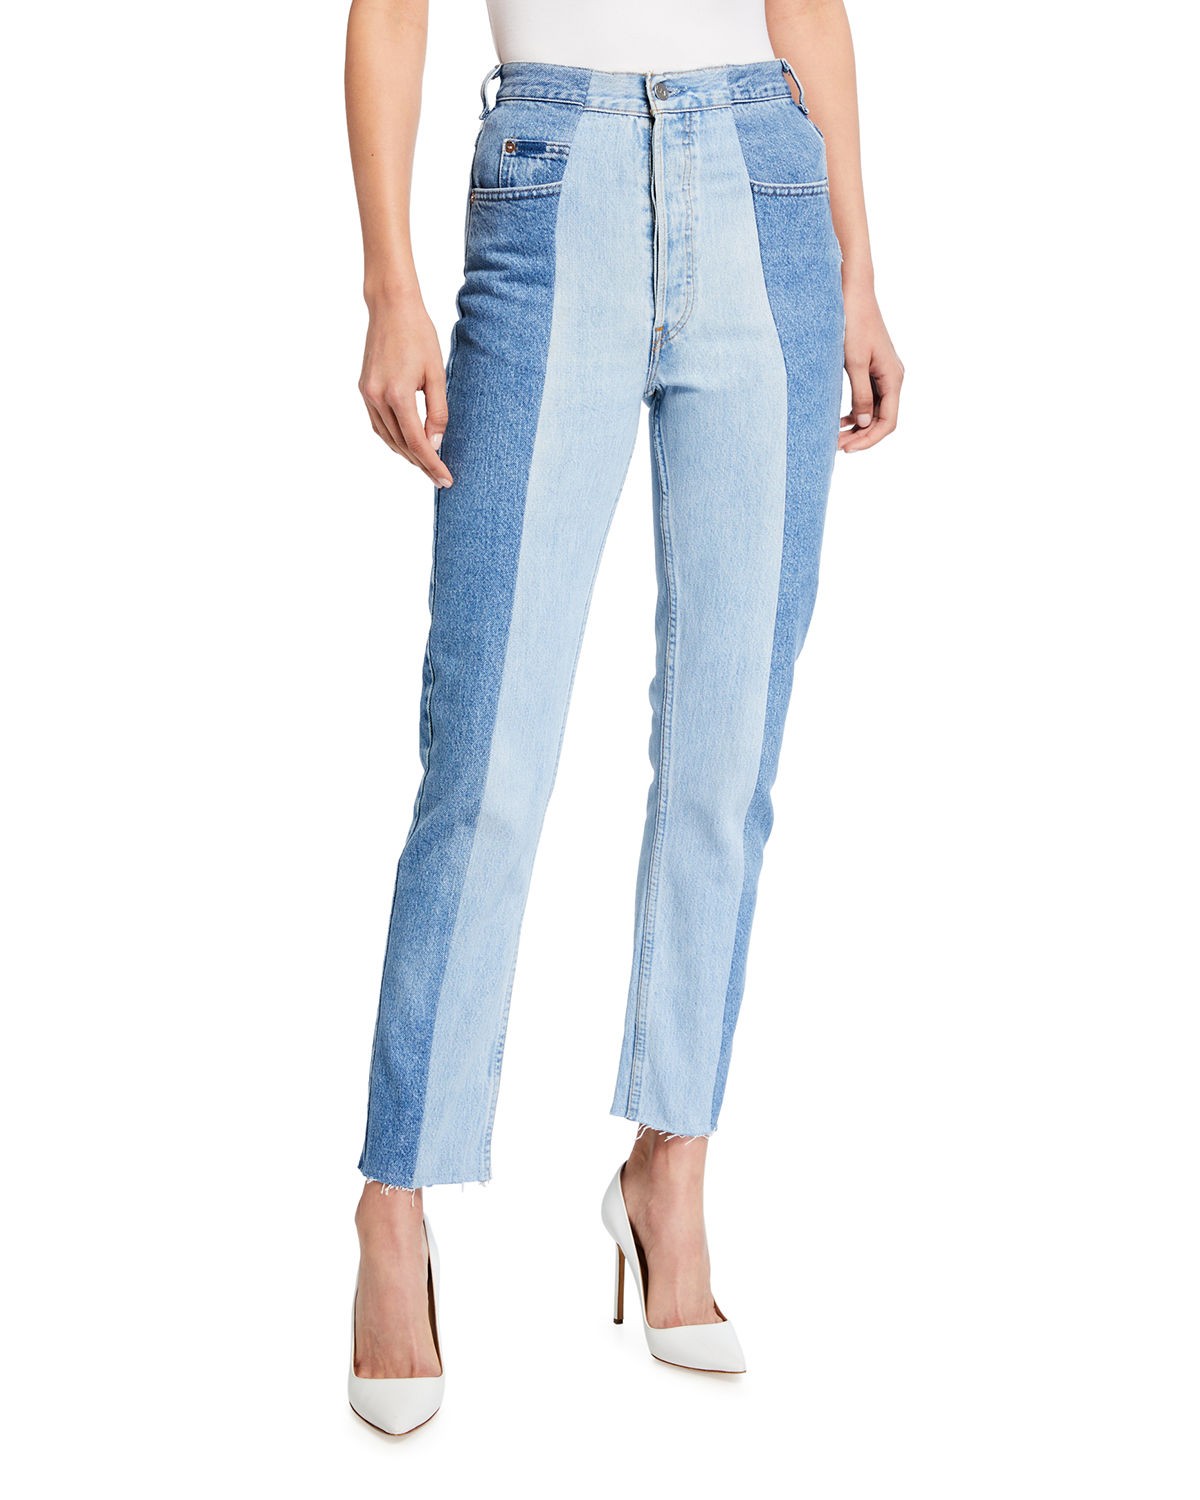 The Flare Kick Crop Jeans